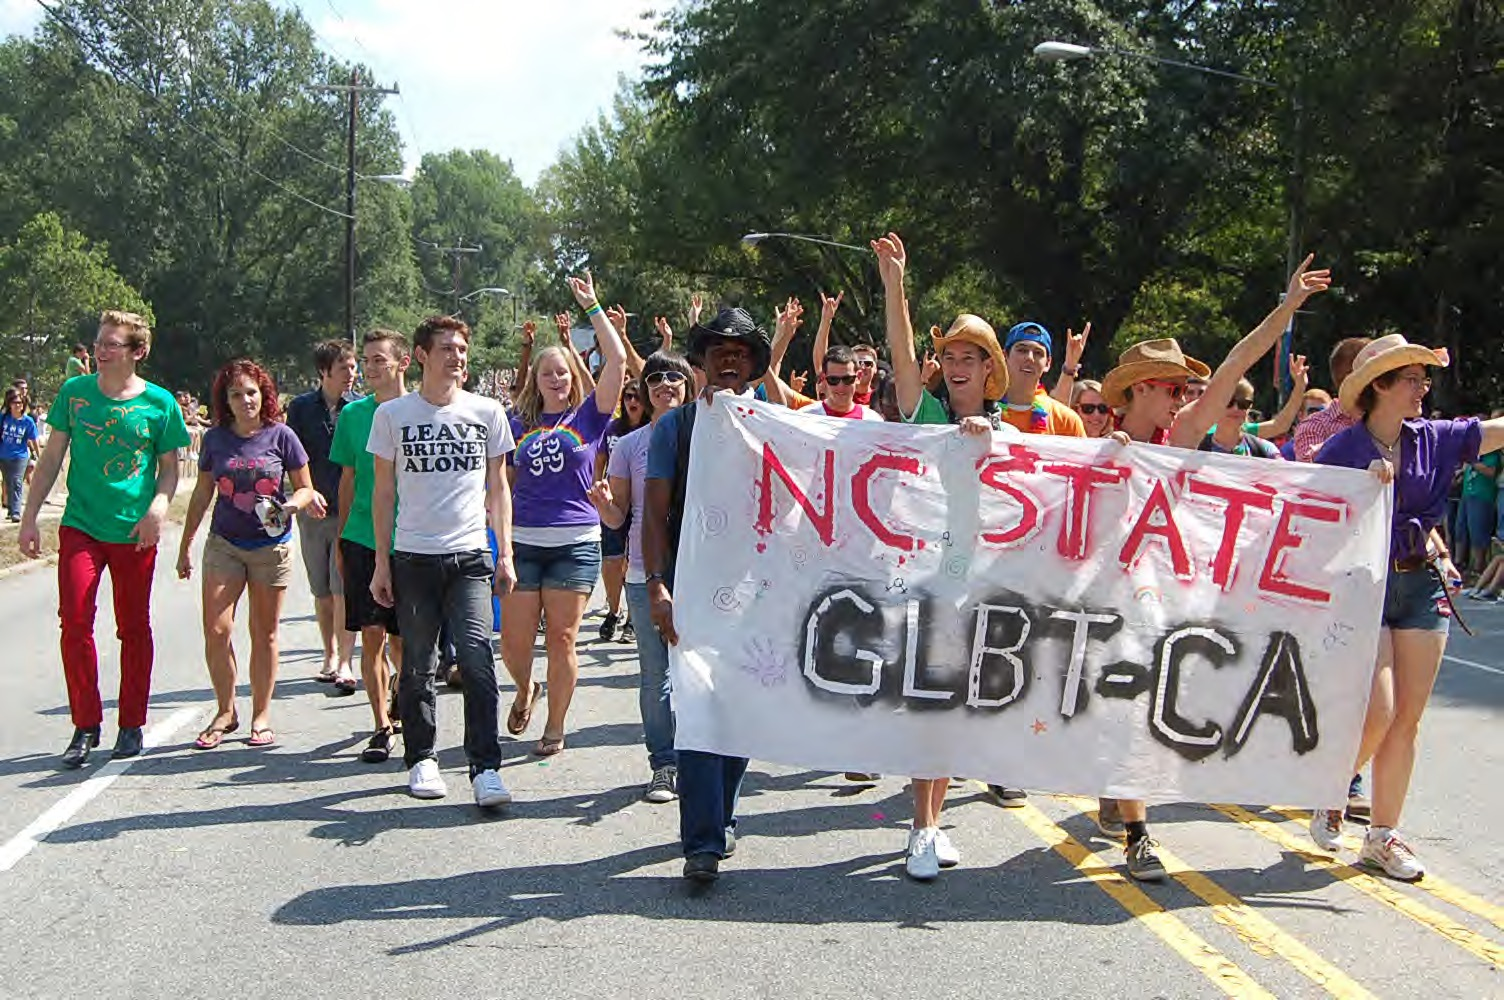 Members of NC State's Gay, Lesbian, Bisexual, Transgender Community Alliance (GLBTCA) at the North Carolina Pride Parade and Festival, Durham, NC, 25 September 2010.